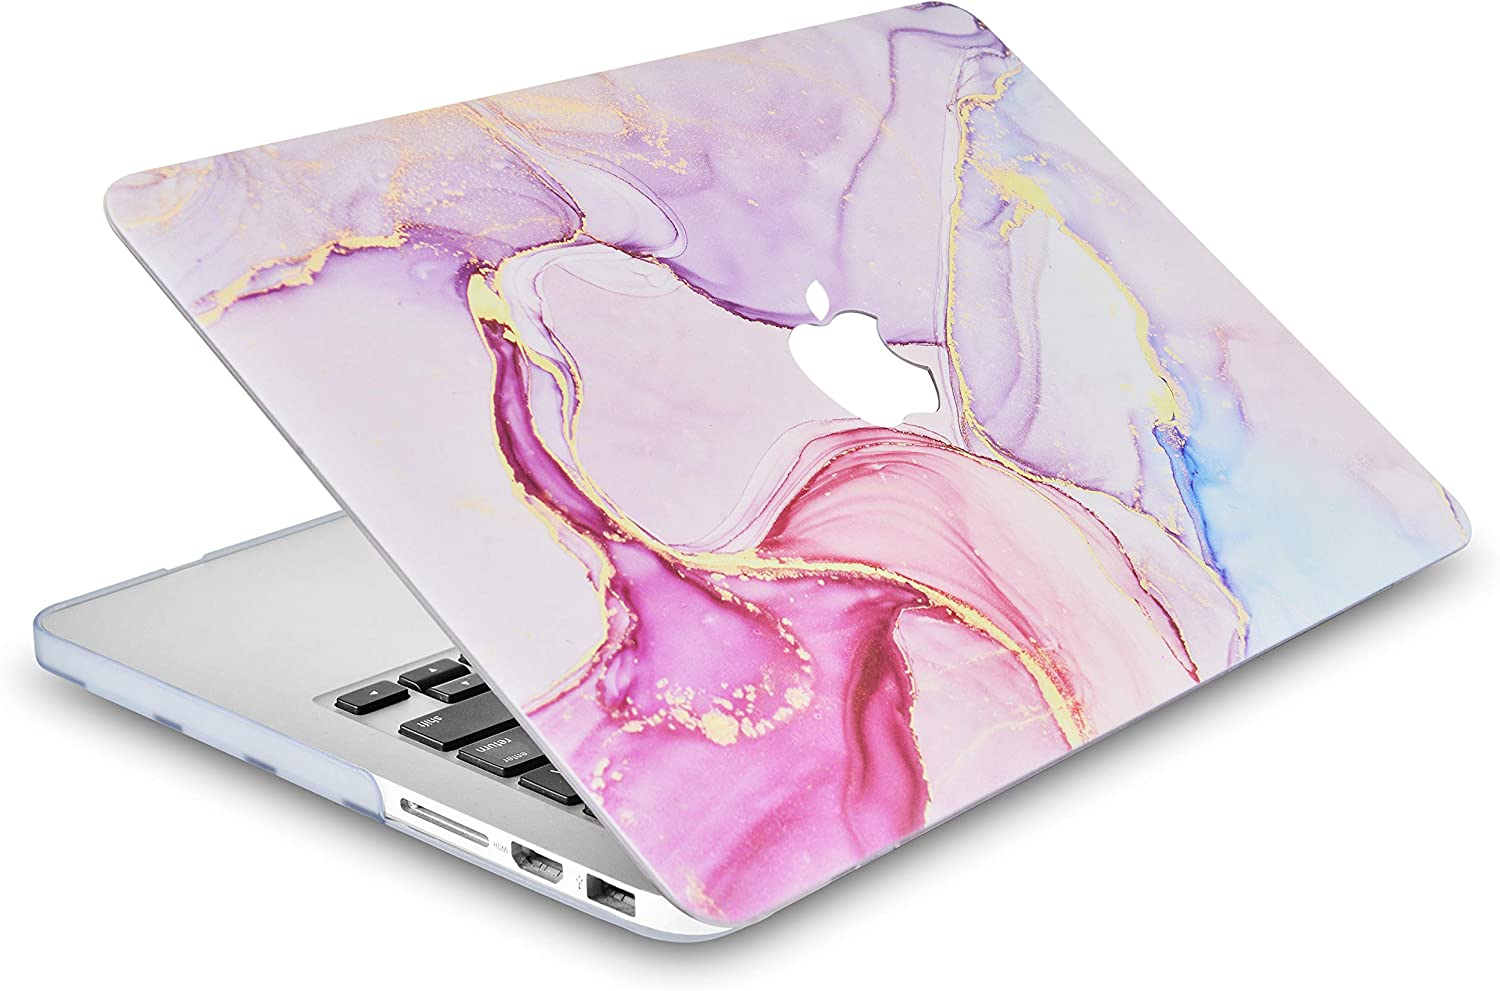 Sleeve Pastel Marble Keyboard Cover /& Screen Protector 2020//2019 A2141 Hard/Shell/Cover LuvCase 4in1 Laptop/Case for MacBook Pro 16 Touch Bar